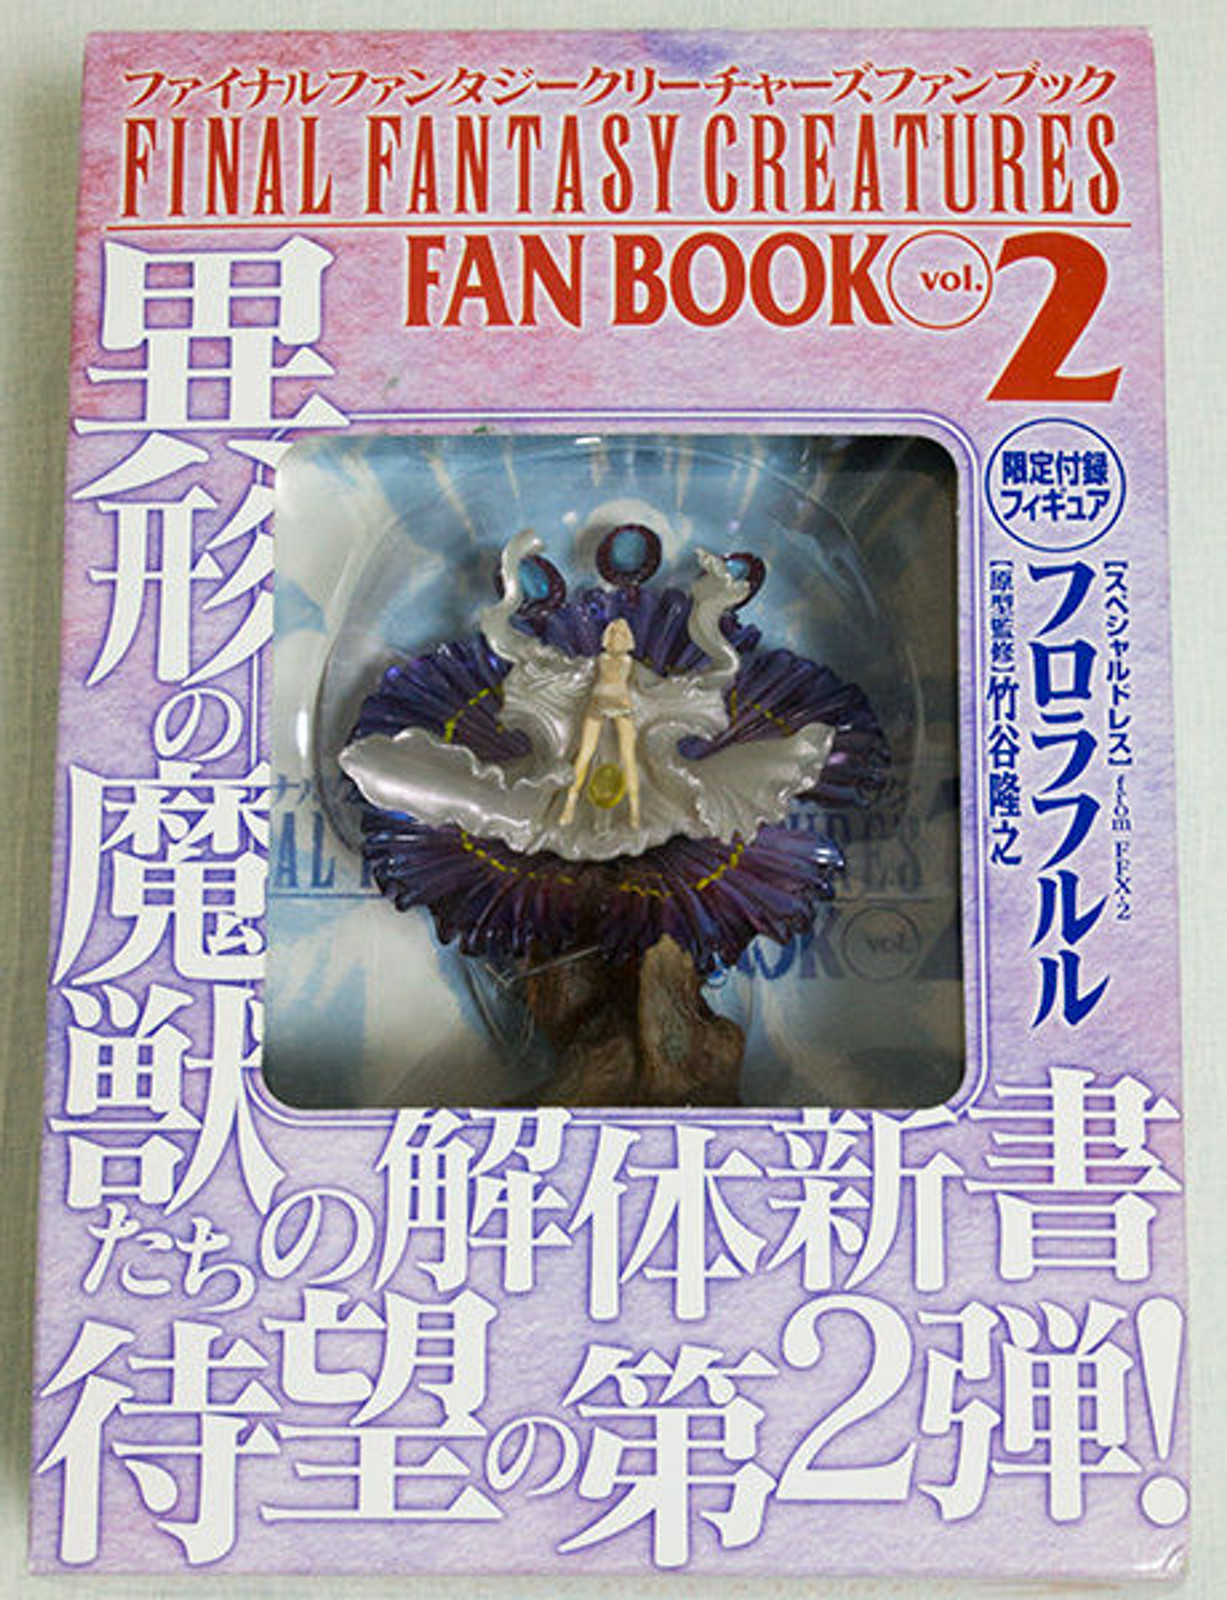 FINAL FANTASY Creatures Fan Book Vol.2 w/ FFX-2 Yuna figure JAPAN GAME